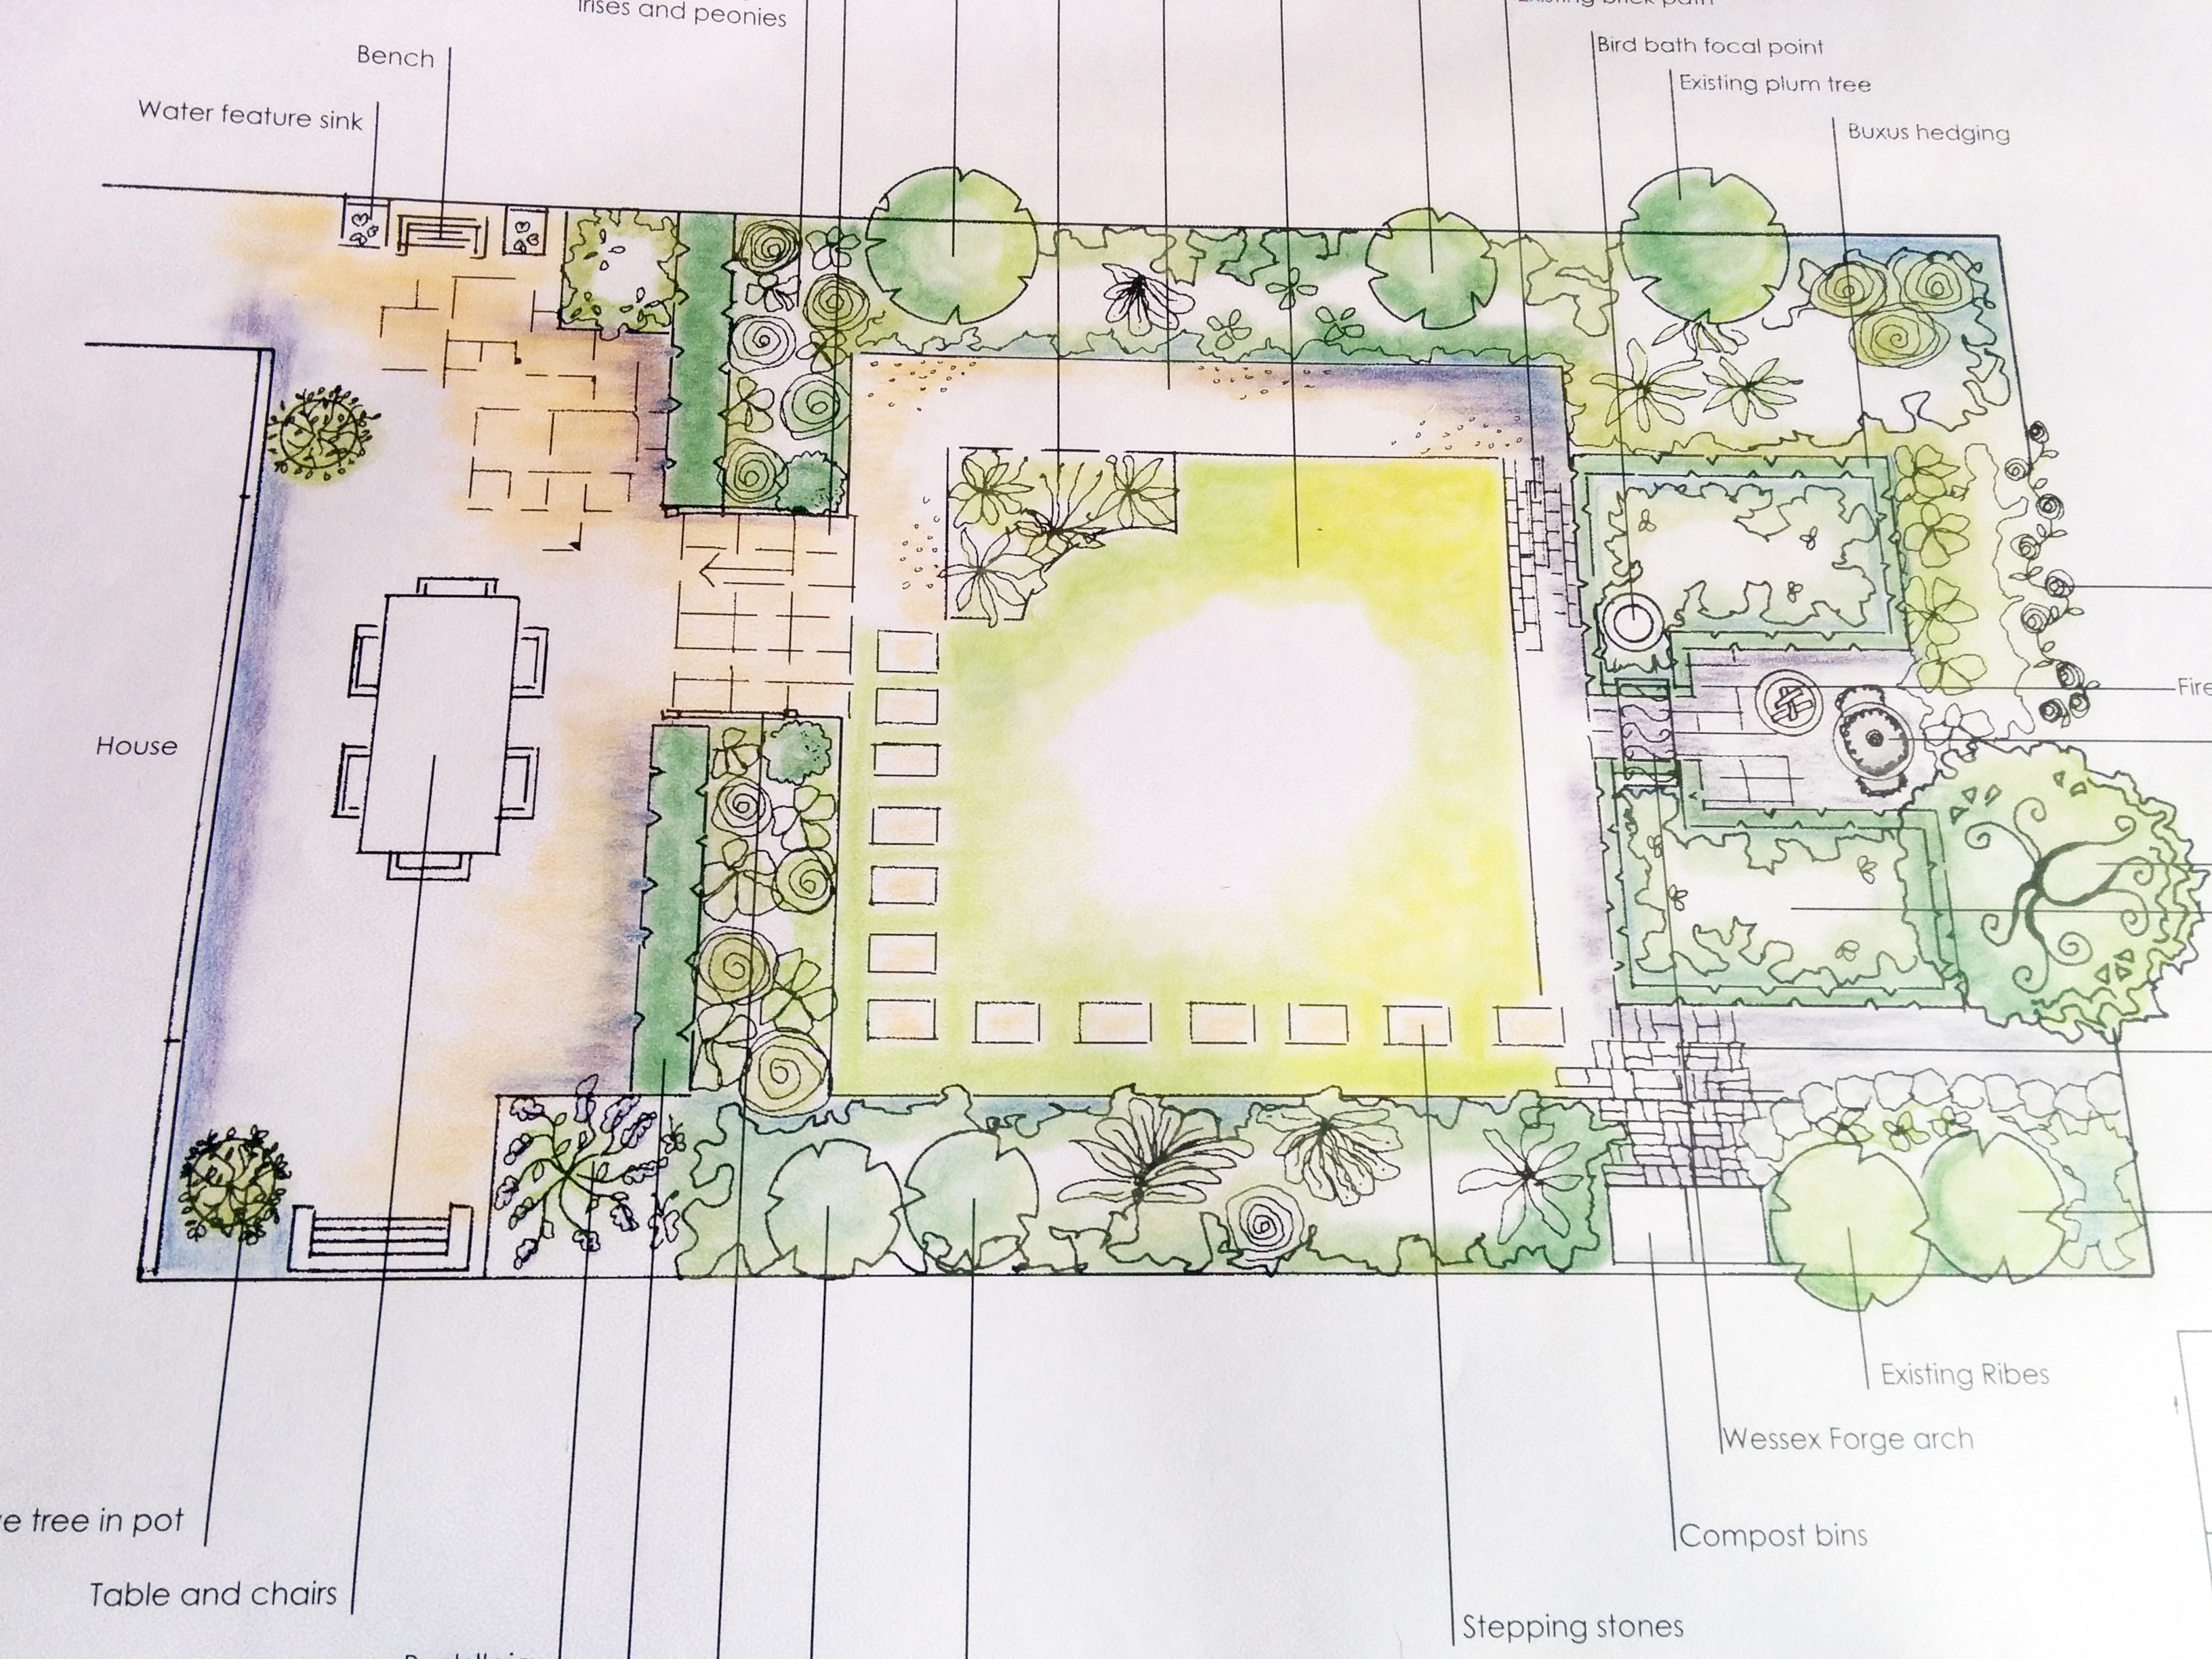 catherine dixons garden designs are drawn to scale and show hard landscaping and garden features from a birds eye view - Garden Design Birds Eye View